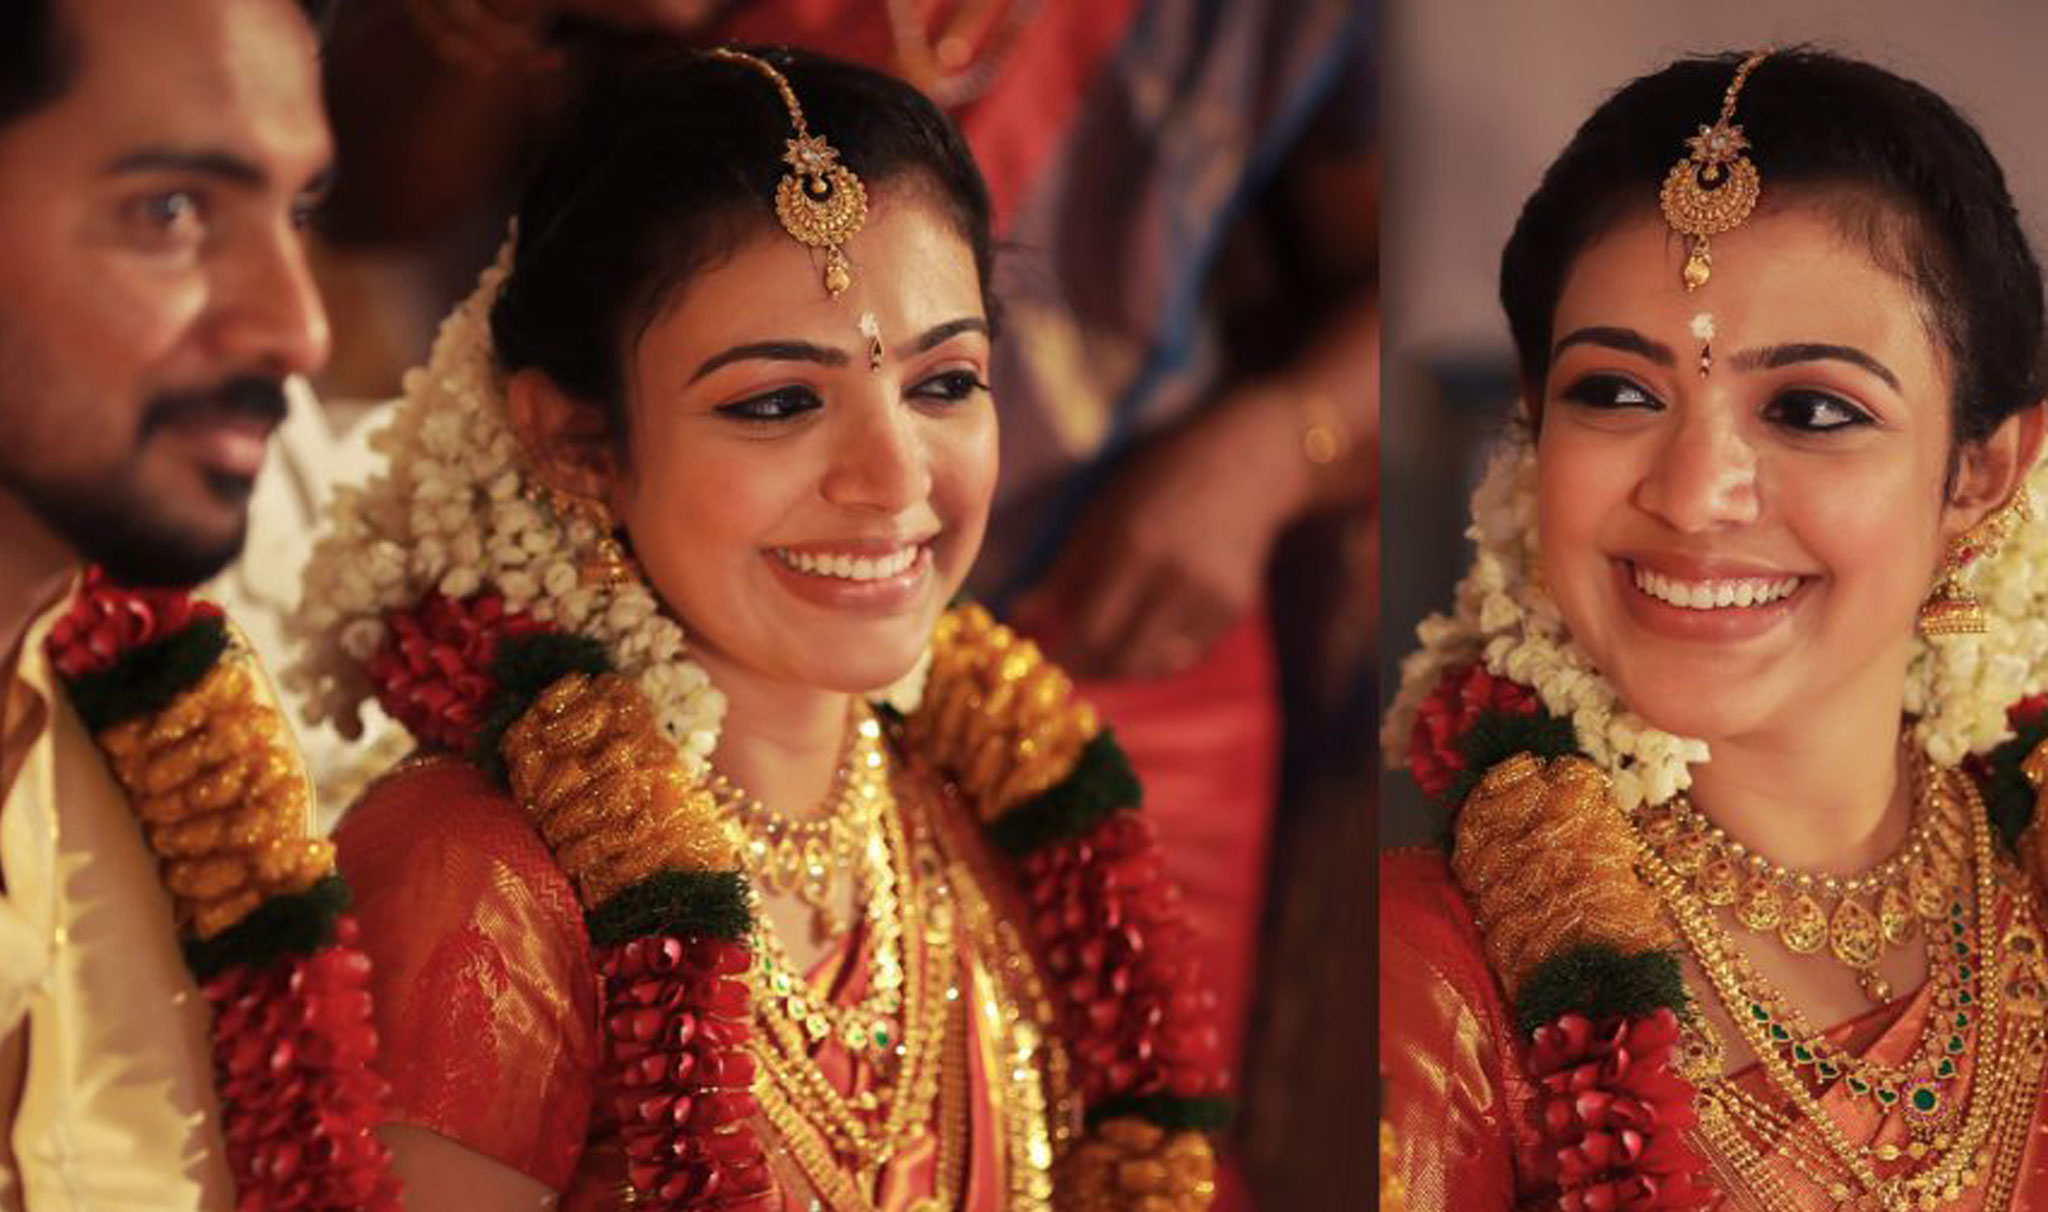 Kerala candid wedding photography in thrissur